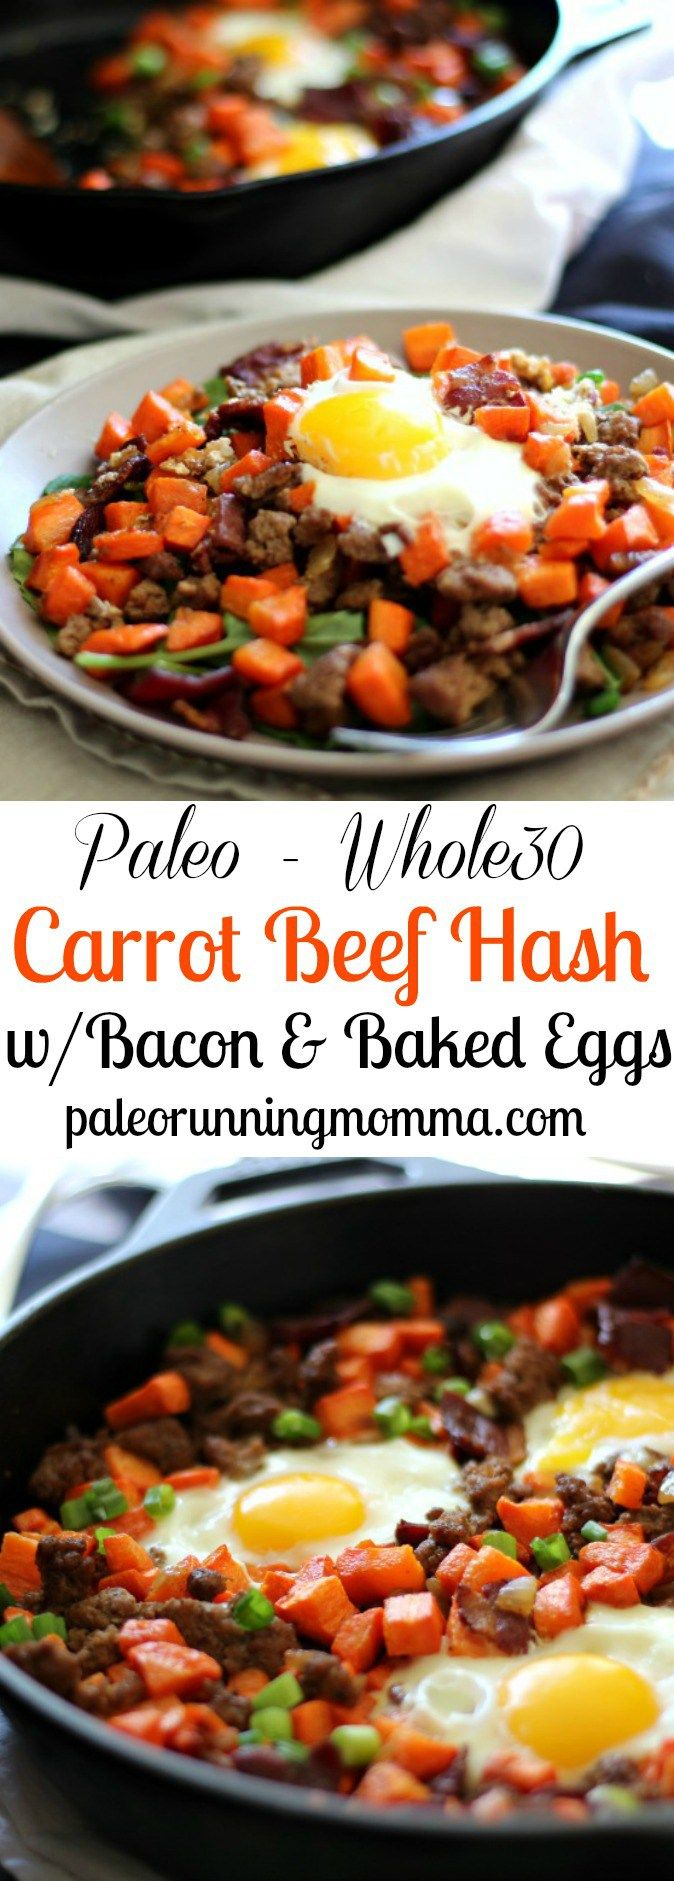 Paleo and Whole30 Roasted Carrot Hash with ground beef and bacon plus baked eggs. #Lowcarb, #grainfree, dairy free, #whole30 and sugar detox friendly!